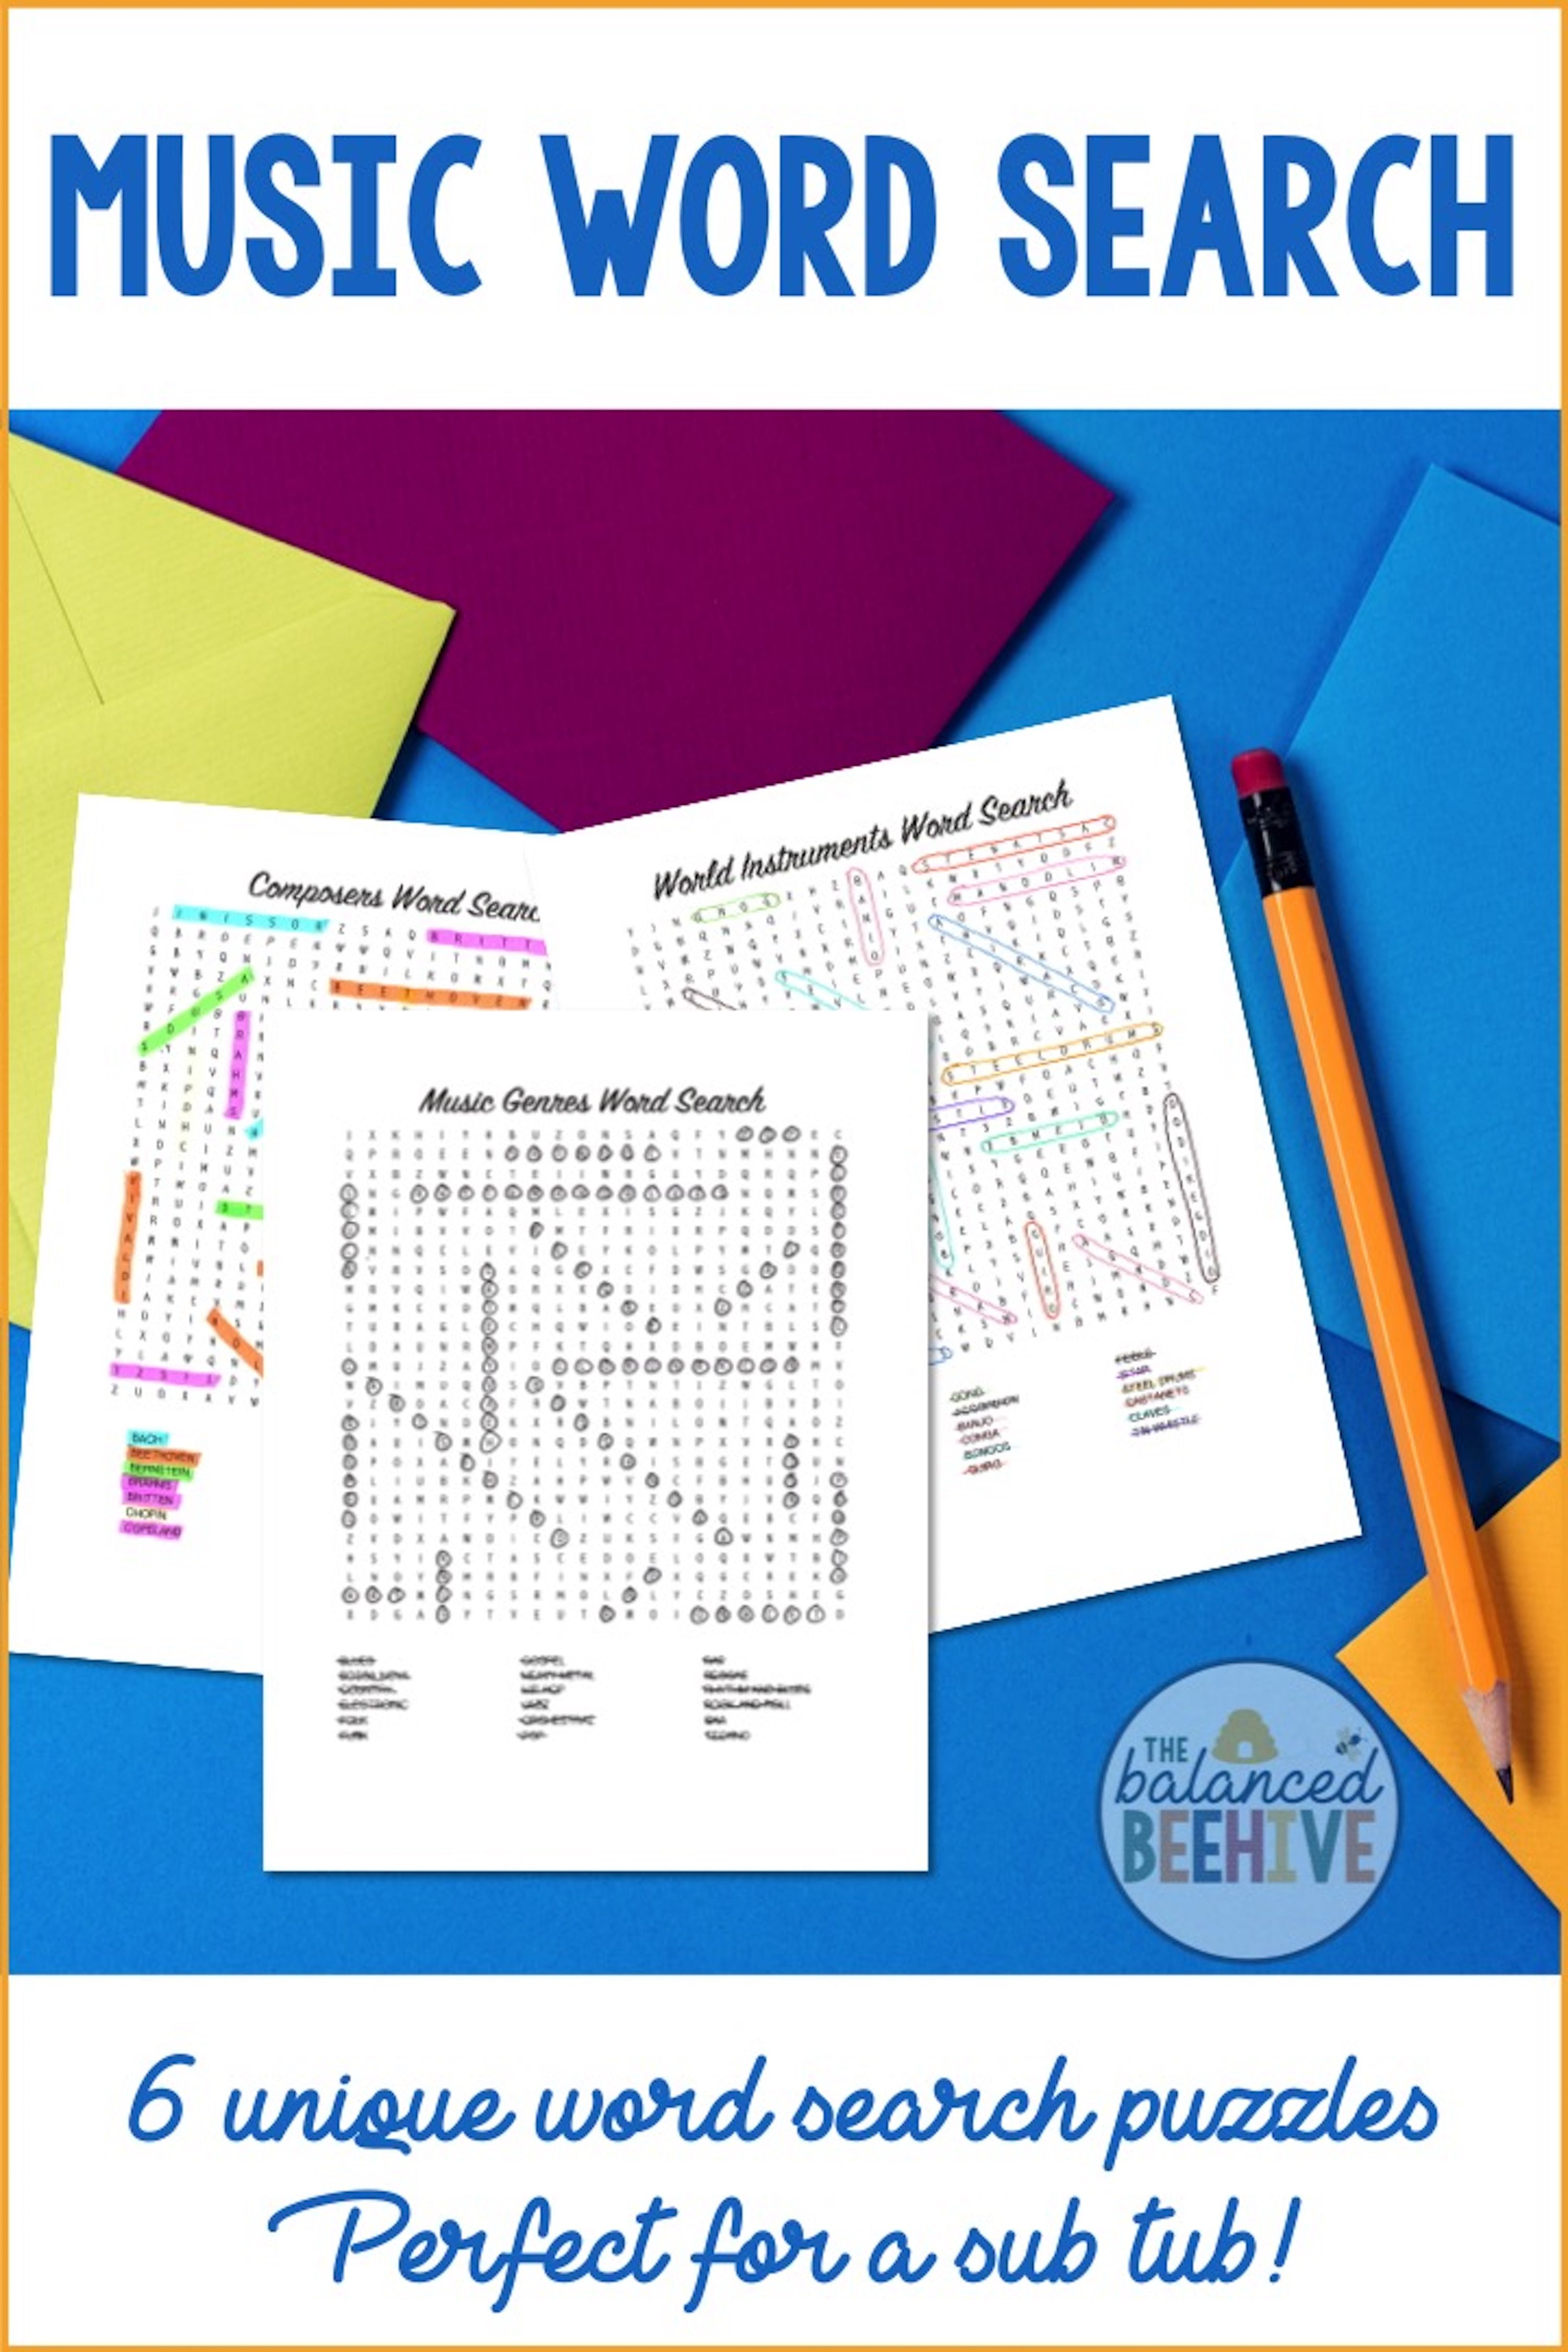 Music Word Search Puzzles